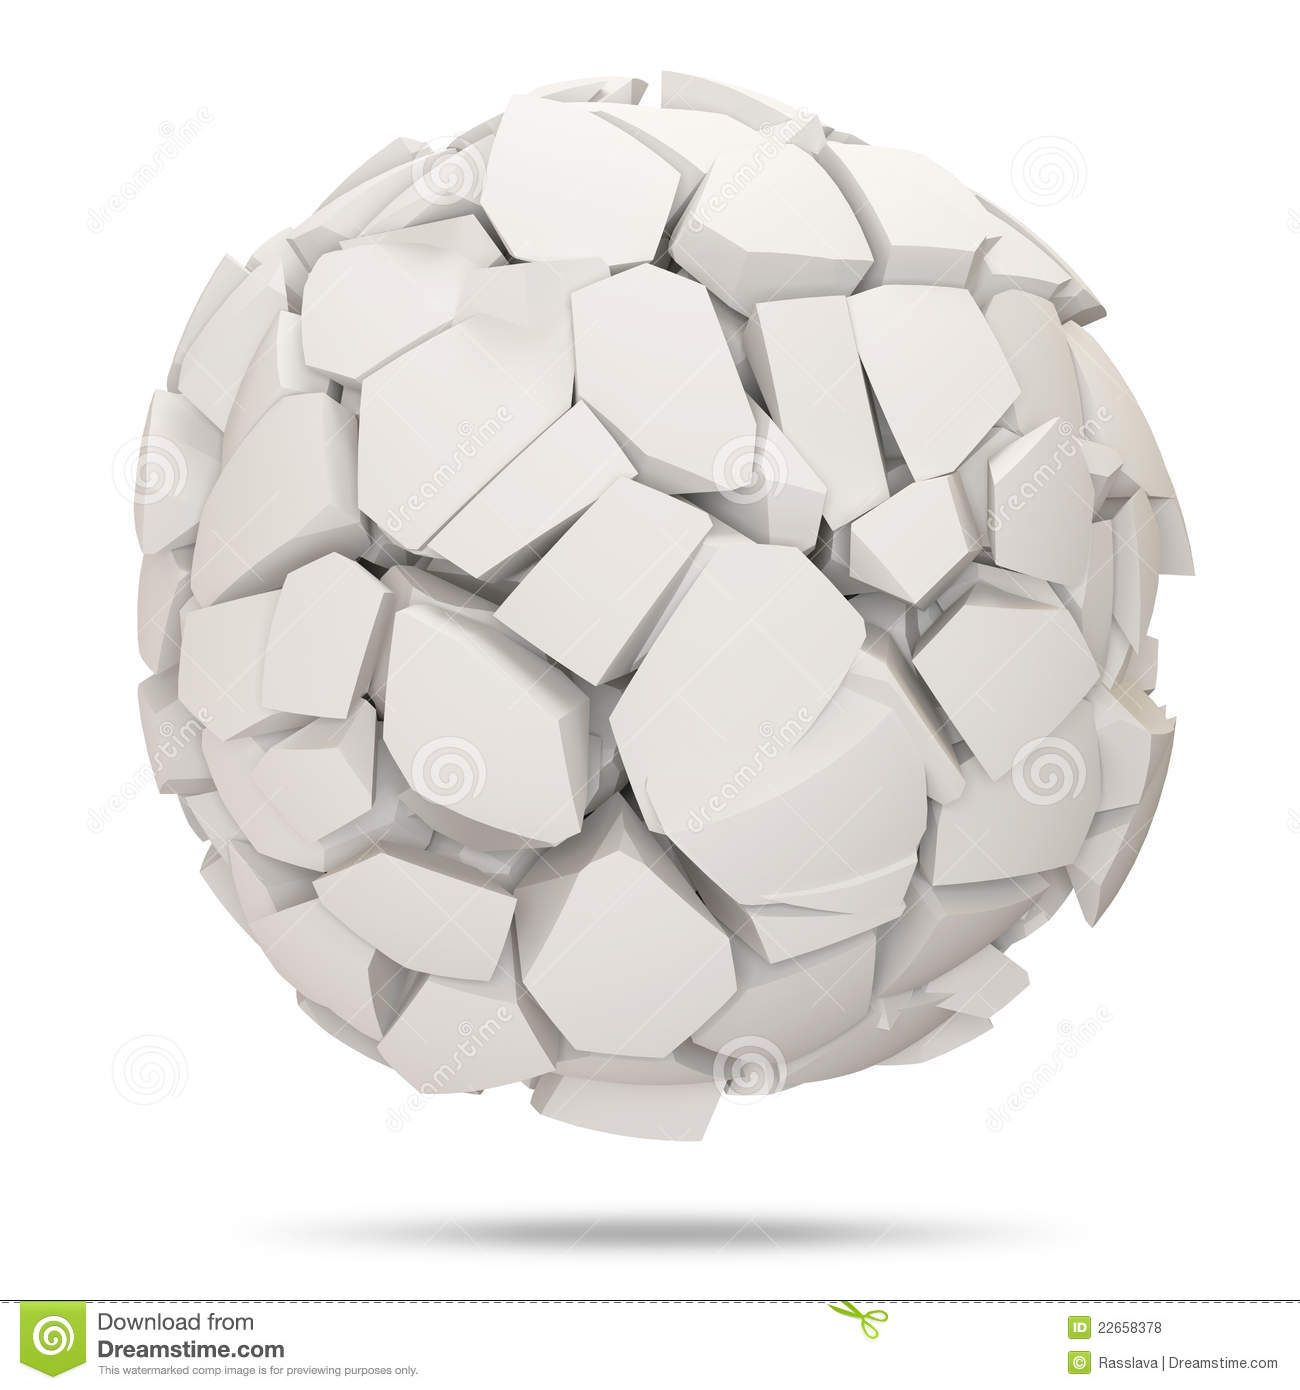 Download wallpapers soccer ball football concepts gates goal download wallpapers soccer ball football concepts gates goal concepts football game sport wallpapers pinterest soccer ball goal and sports fandeluxe Images